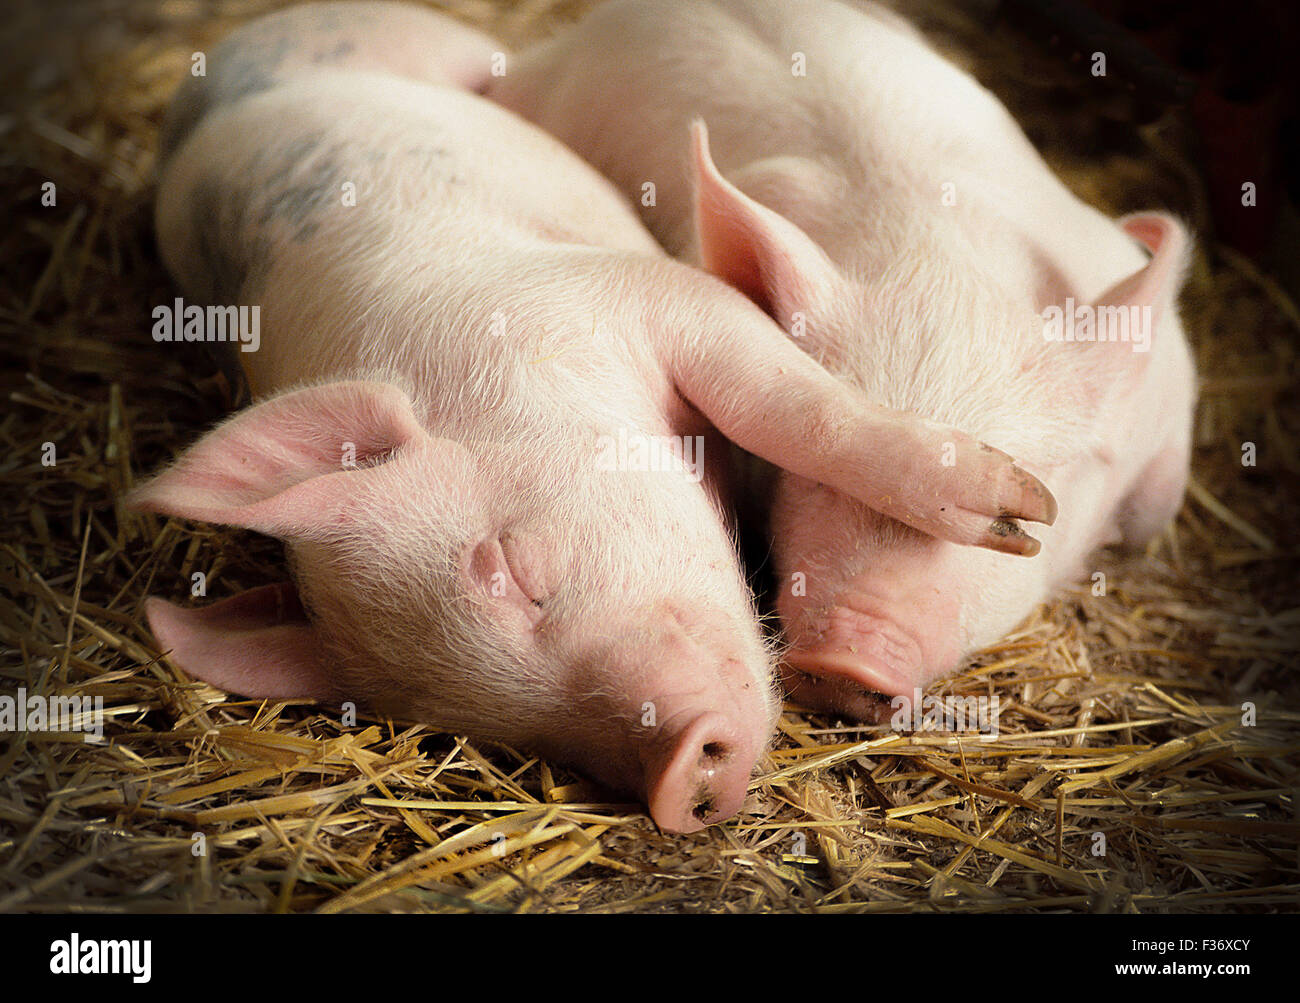 2 baby farm animals pink pigs, eyes closed, lay sleeping close together on straw. One piggy has its arm over the - Stock Image